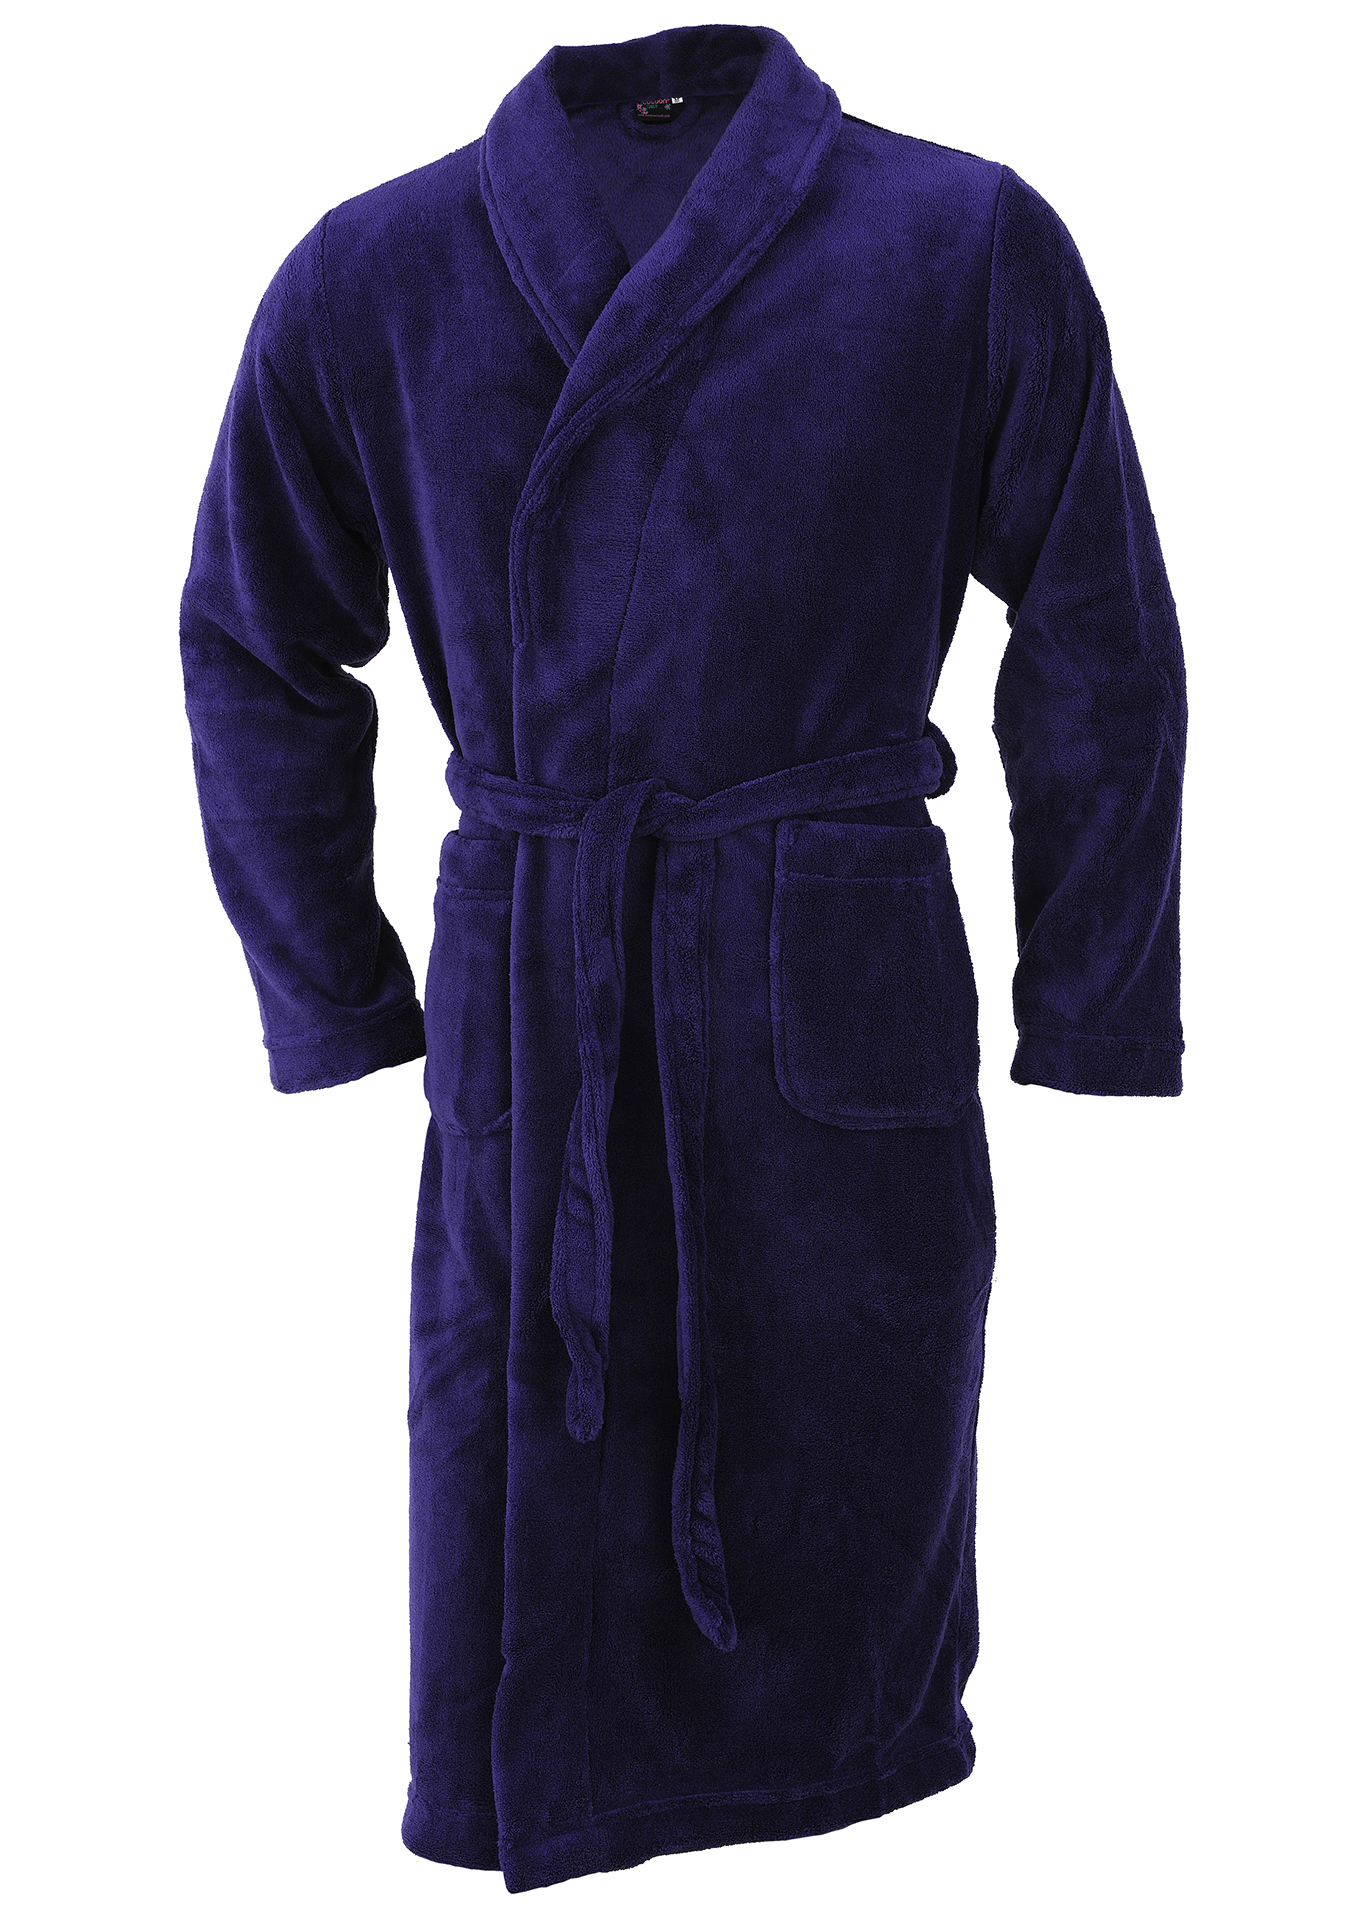 Bath Robes Comfort purple